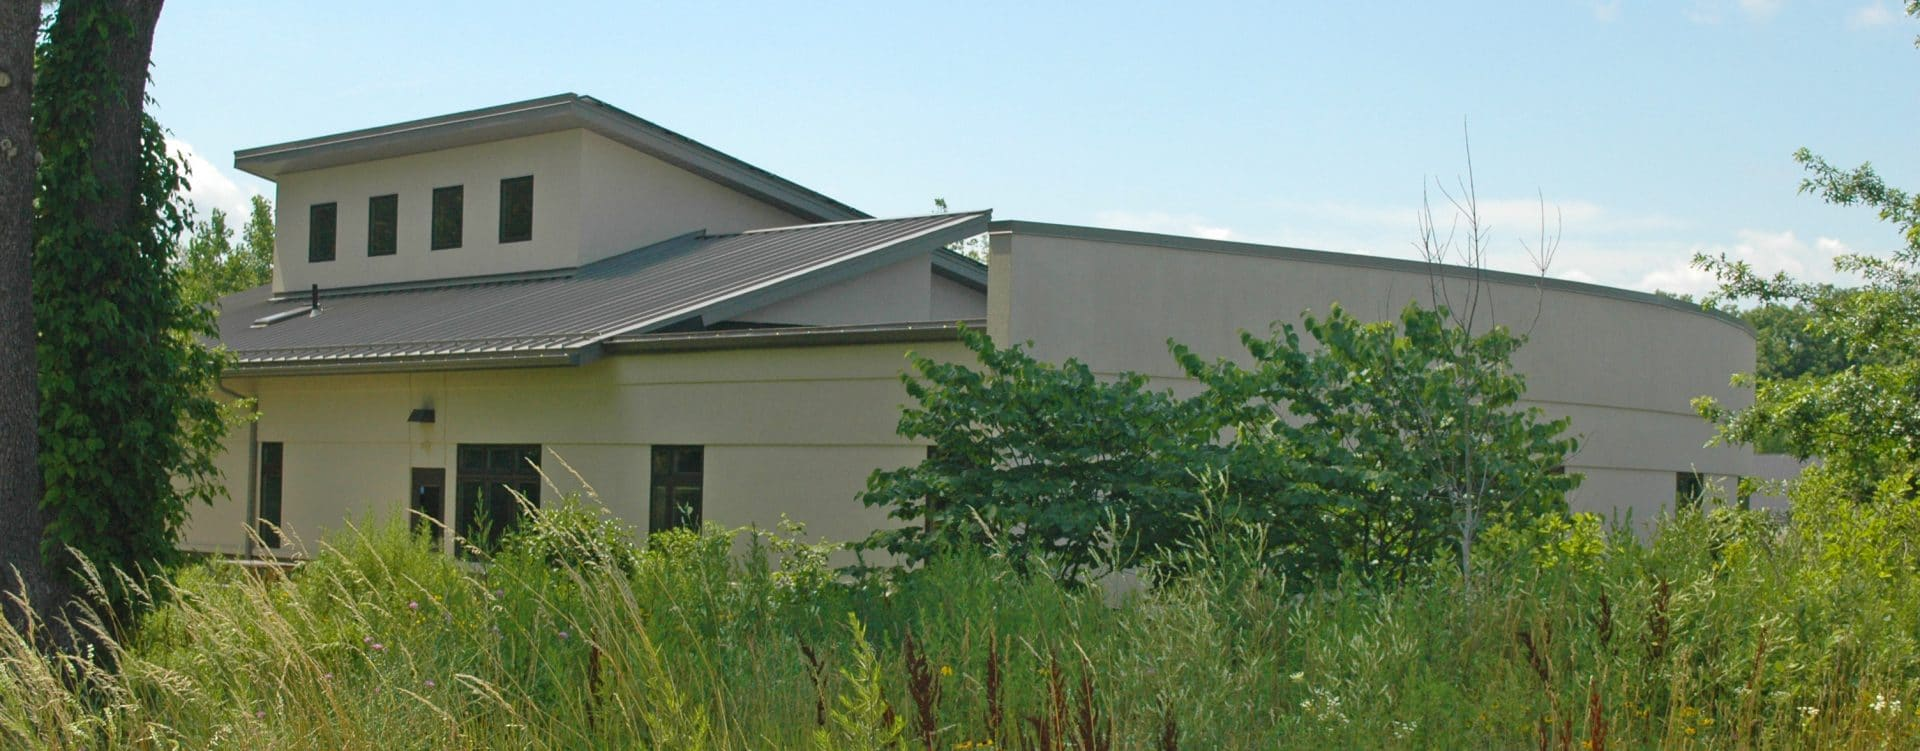 Image of rear of POA building.